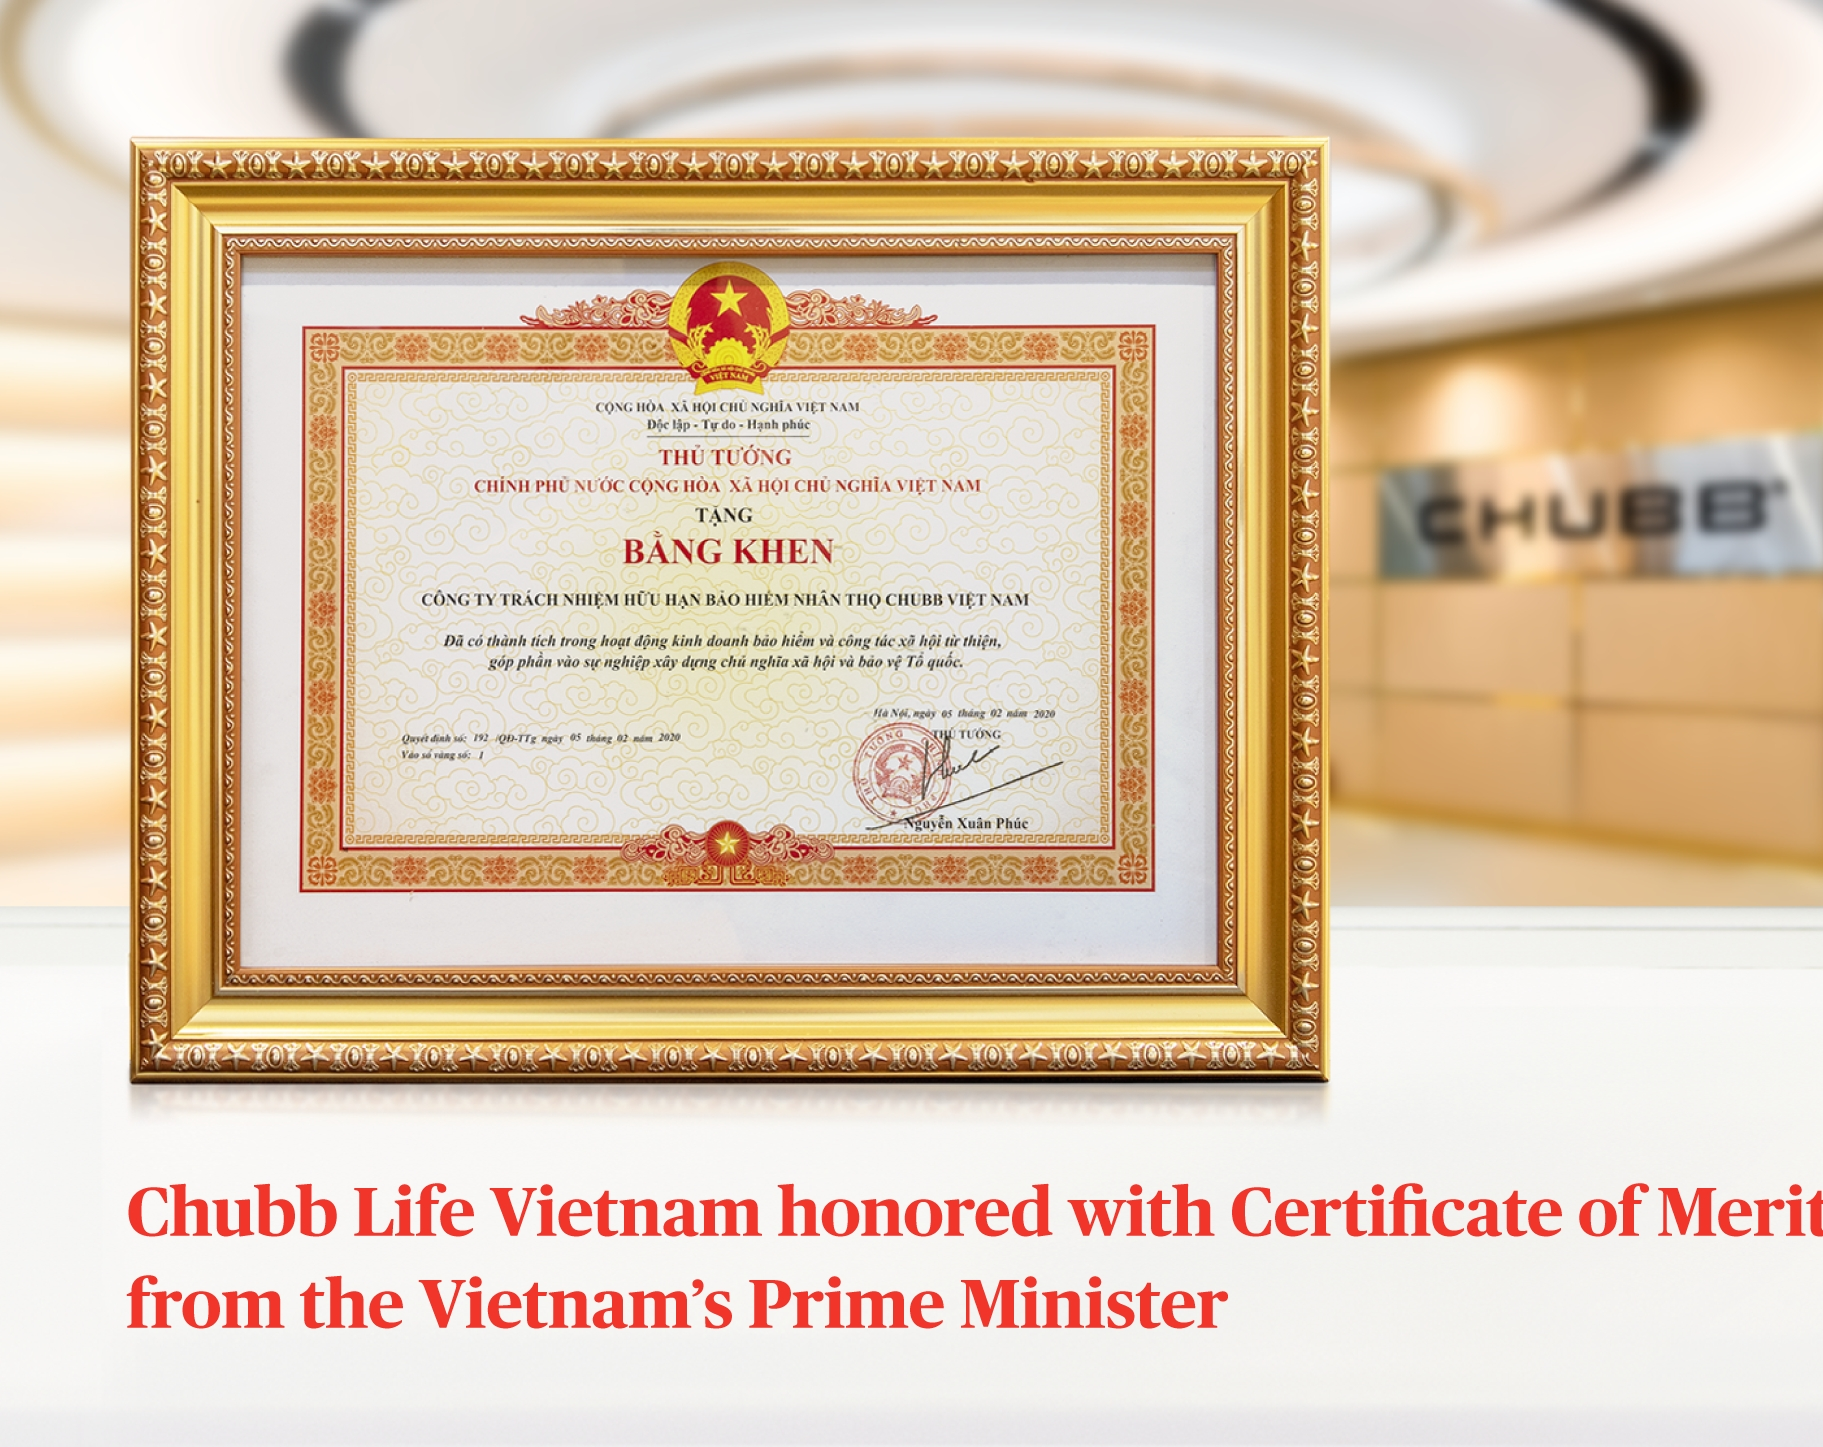 Chubb Life Vietnam honoured with Certificate of Merit from Vietnamese prime minister